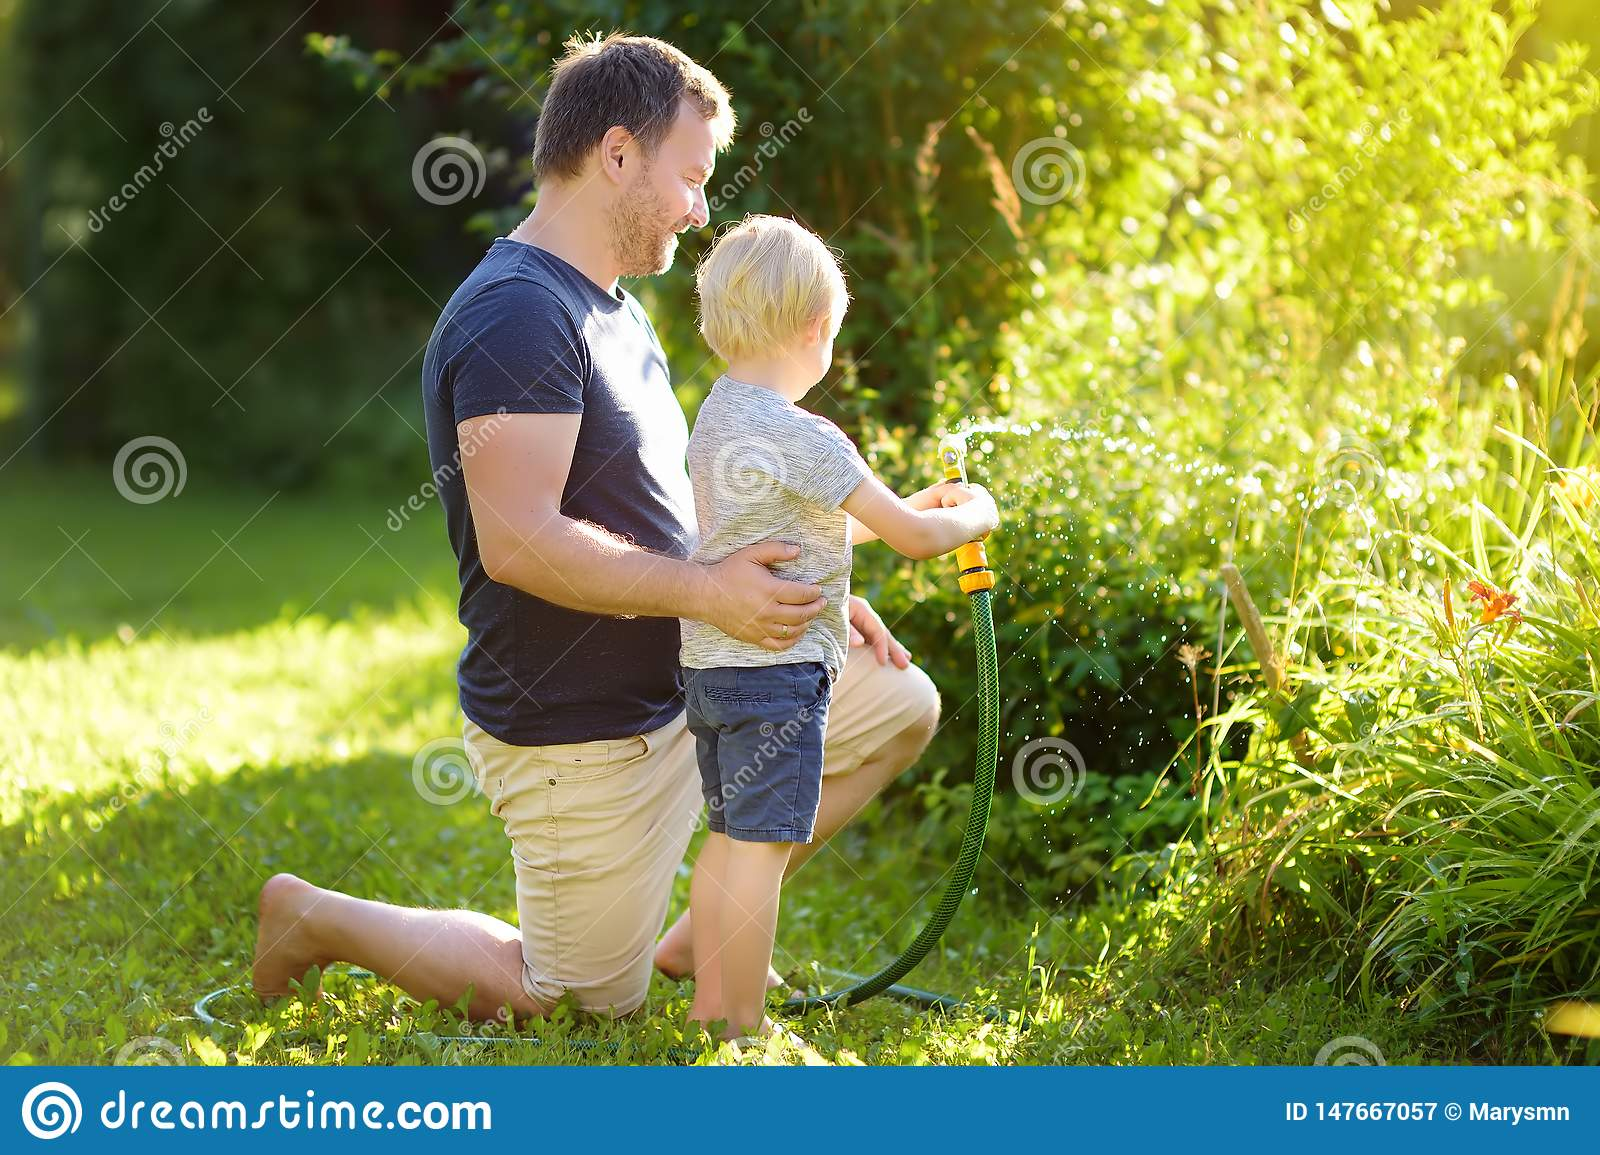 Funny little boy with his father playing with garden hose in sunny backyard. Preschooler child having fun with spray of water